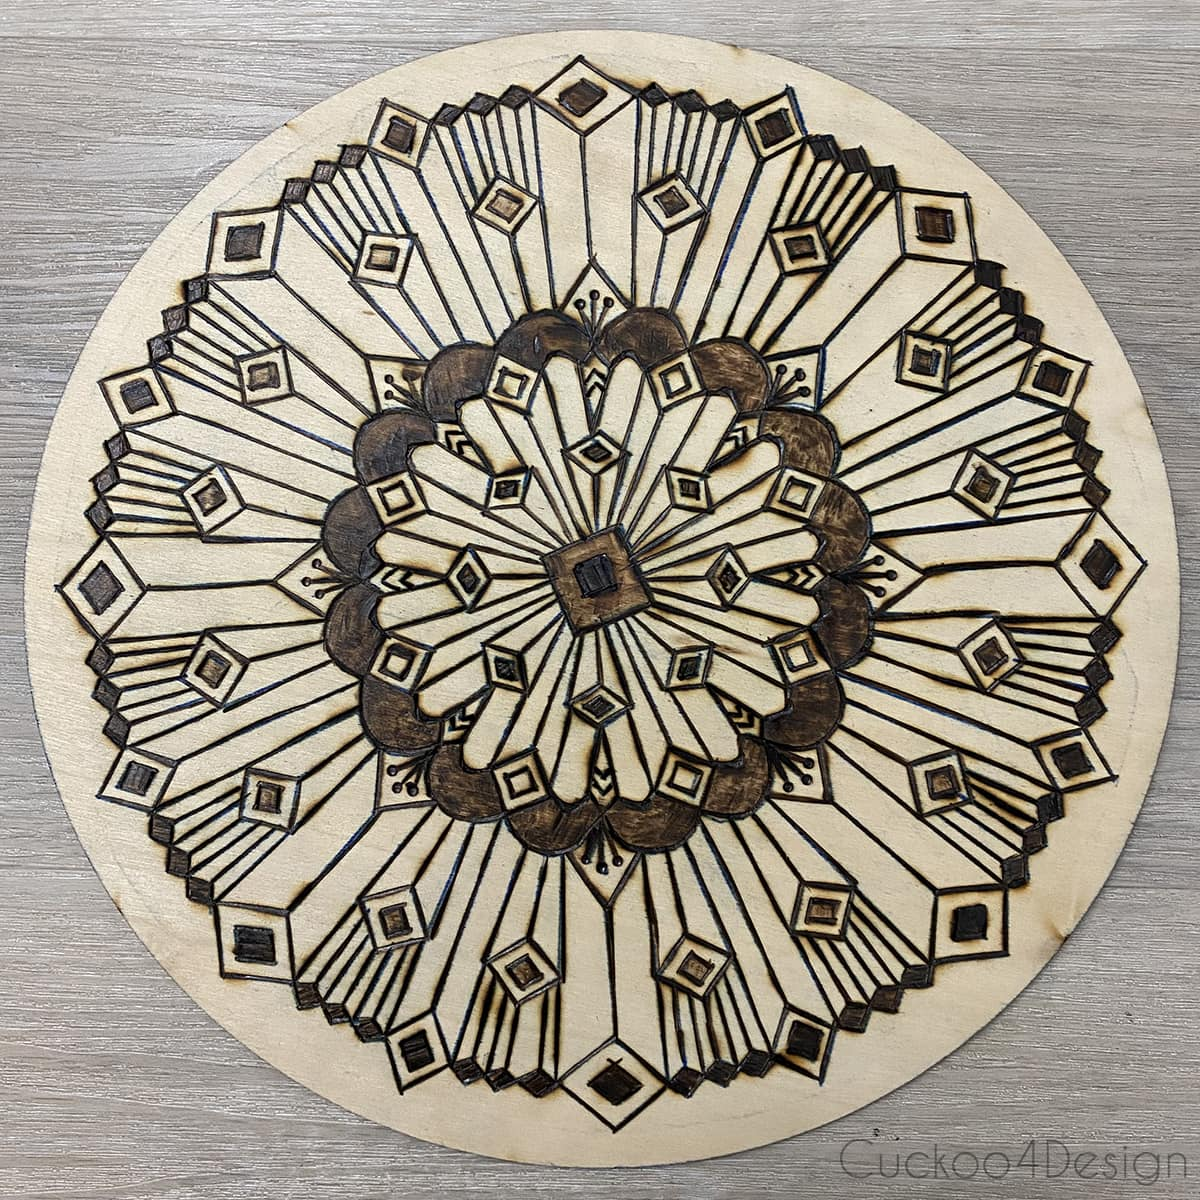 finished wood-fired mandala with straight lines and without color